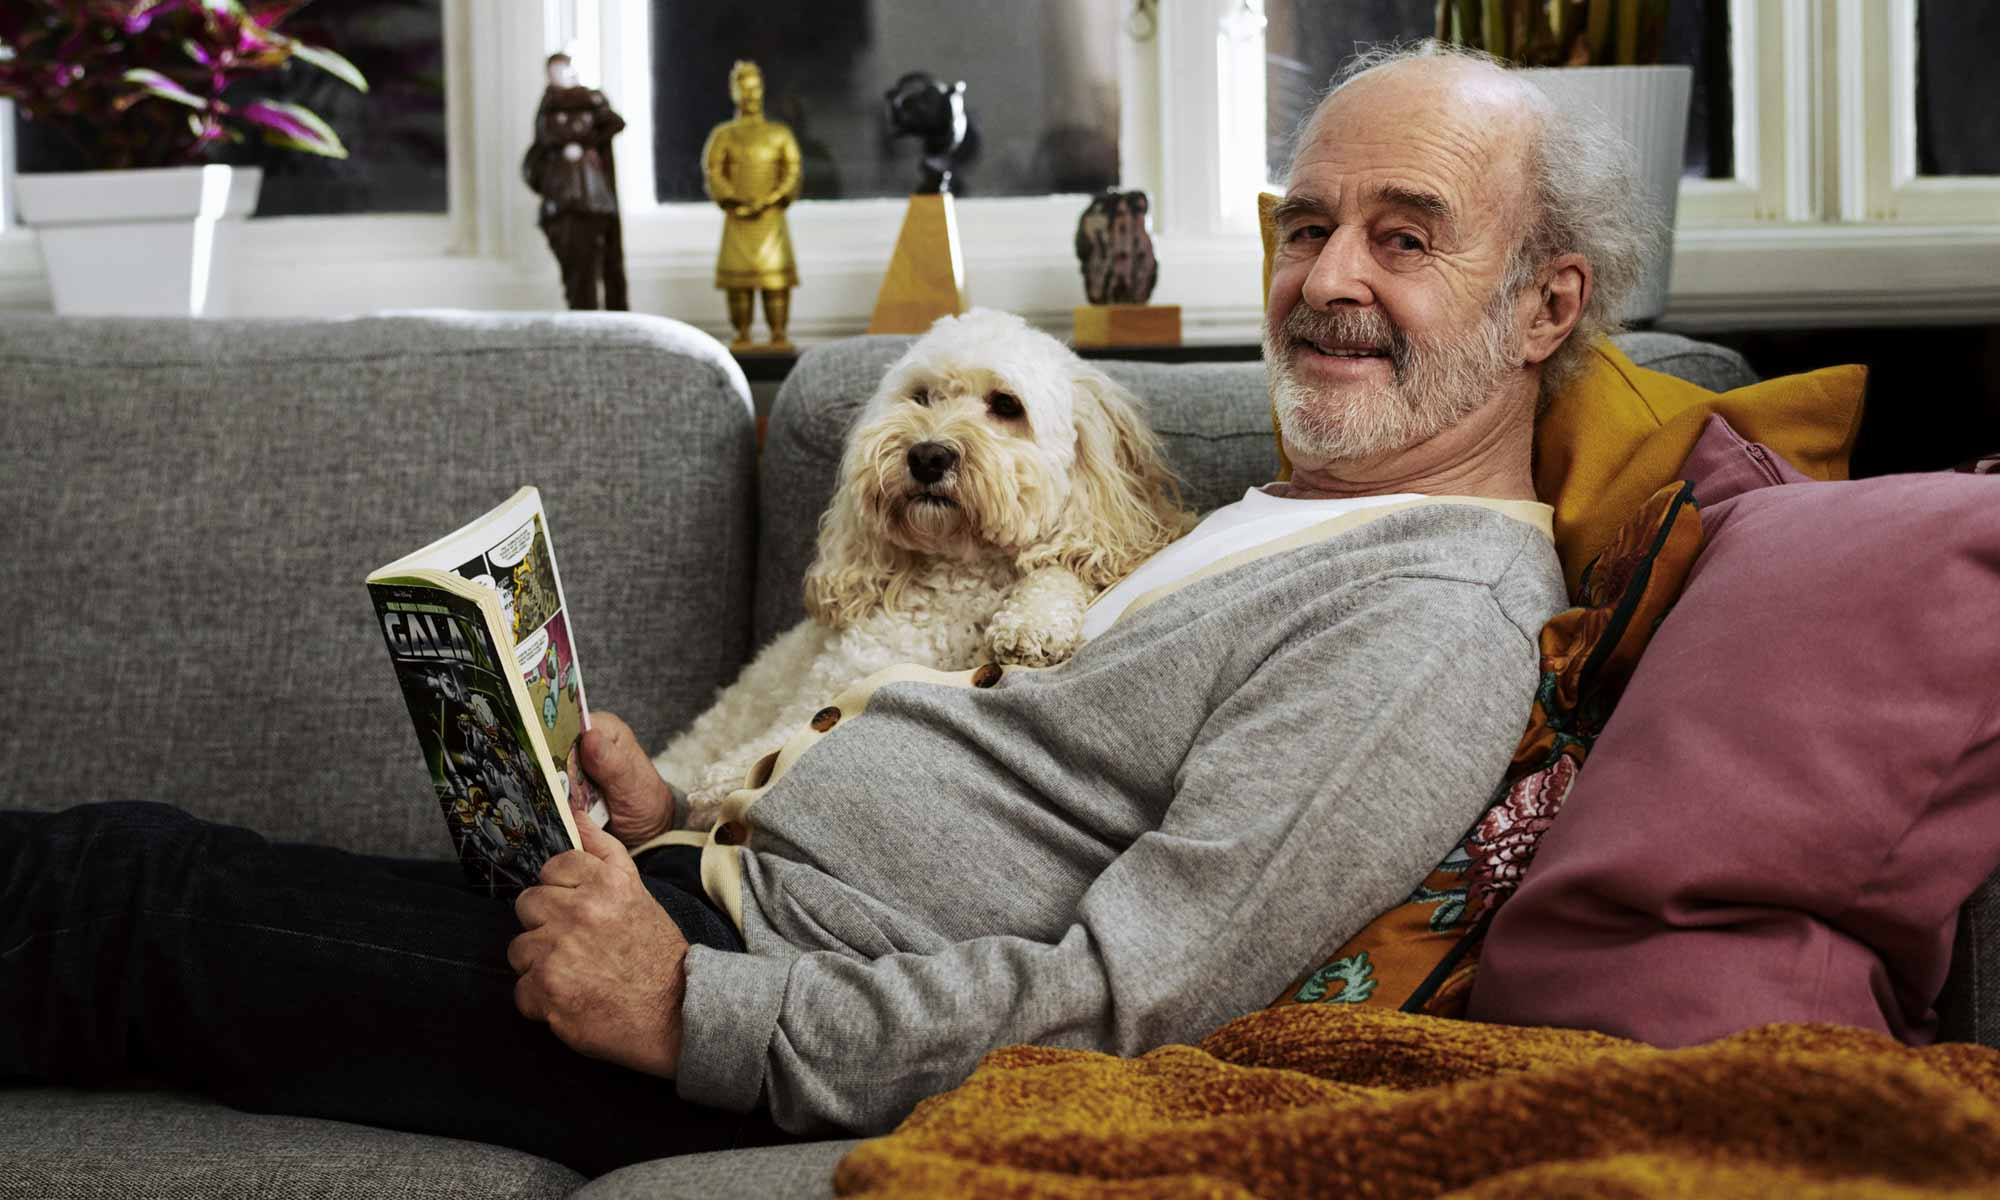 Senior man on the couch with a dog